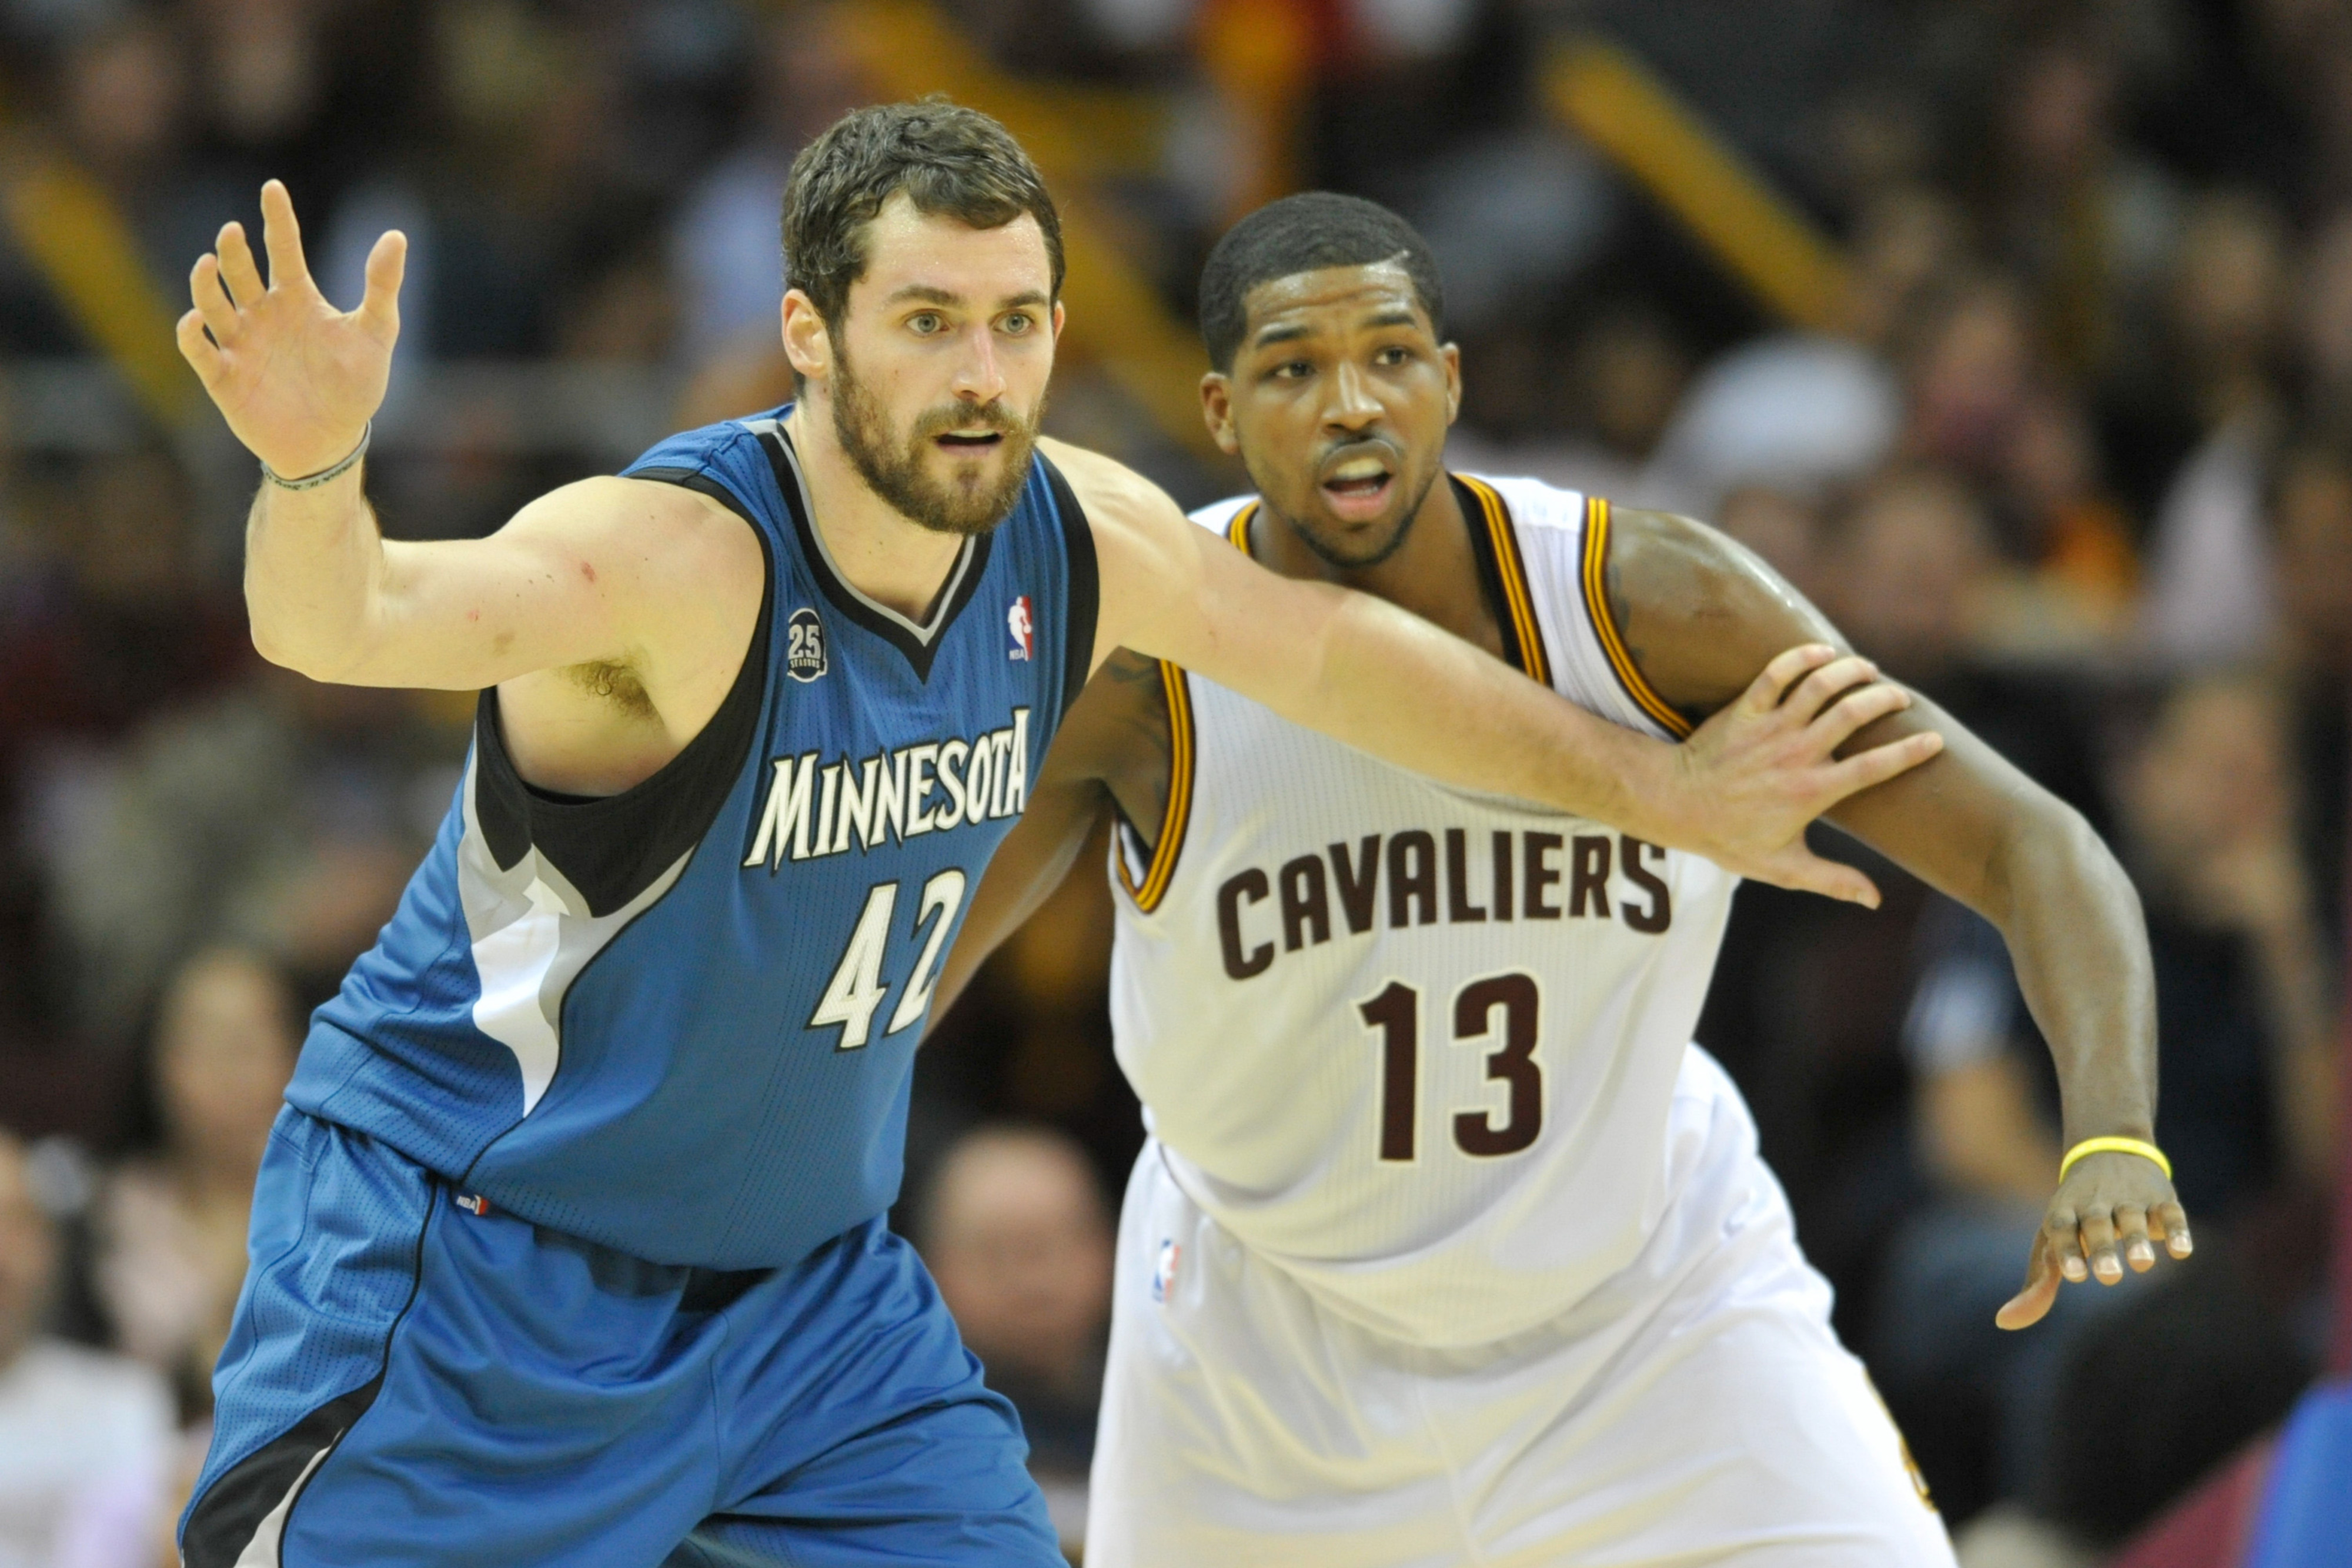 Cavaliers 'confident' they'll land Kevin Love in trade involving Andrew Wiggins